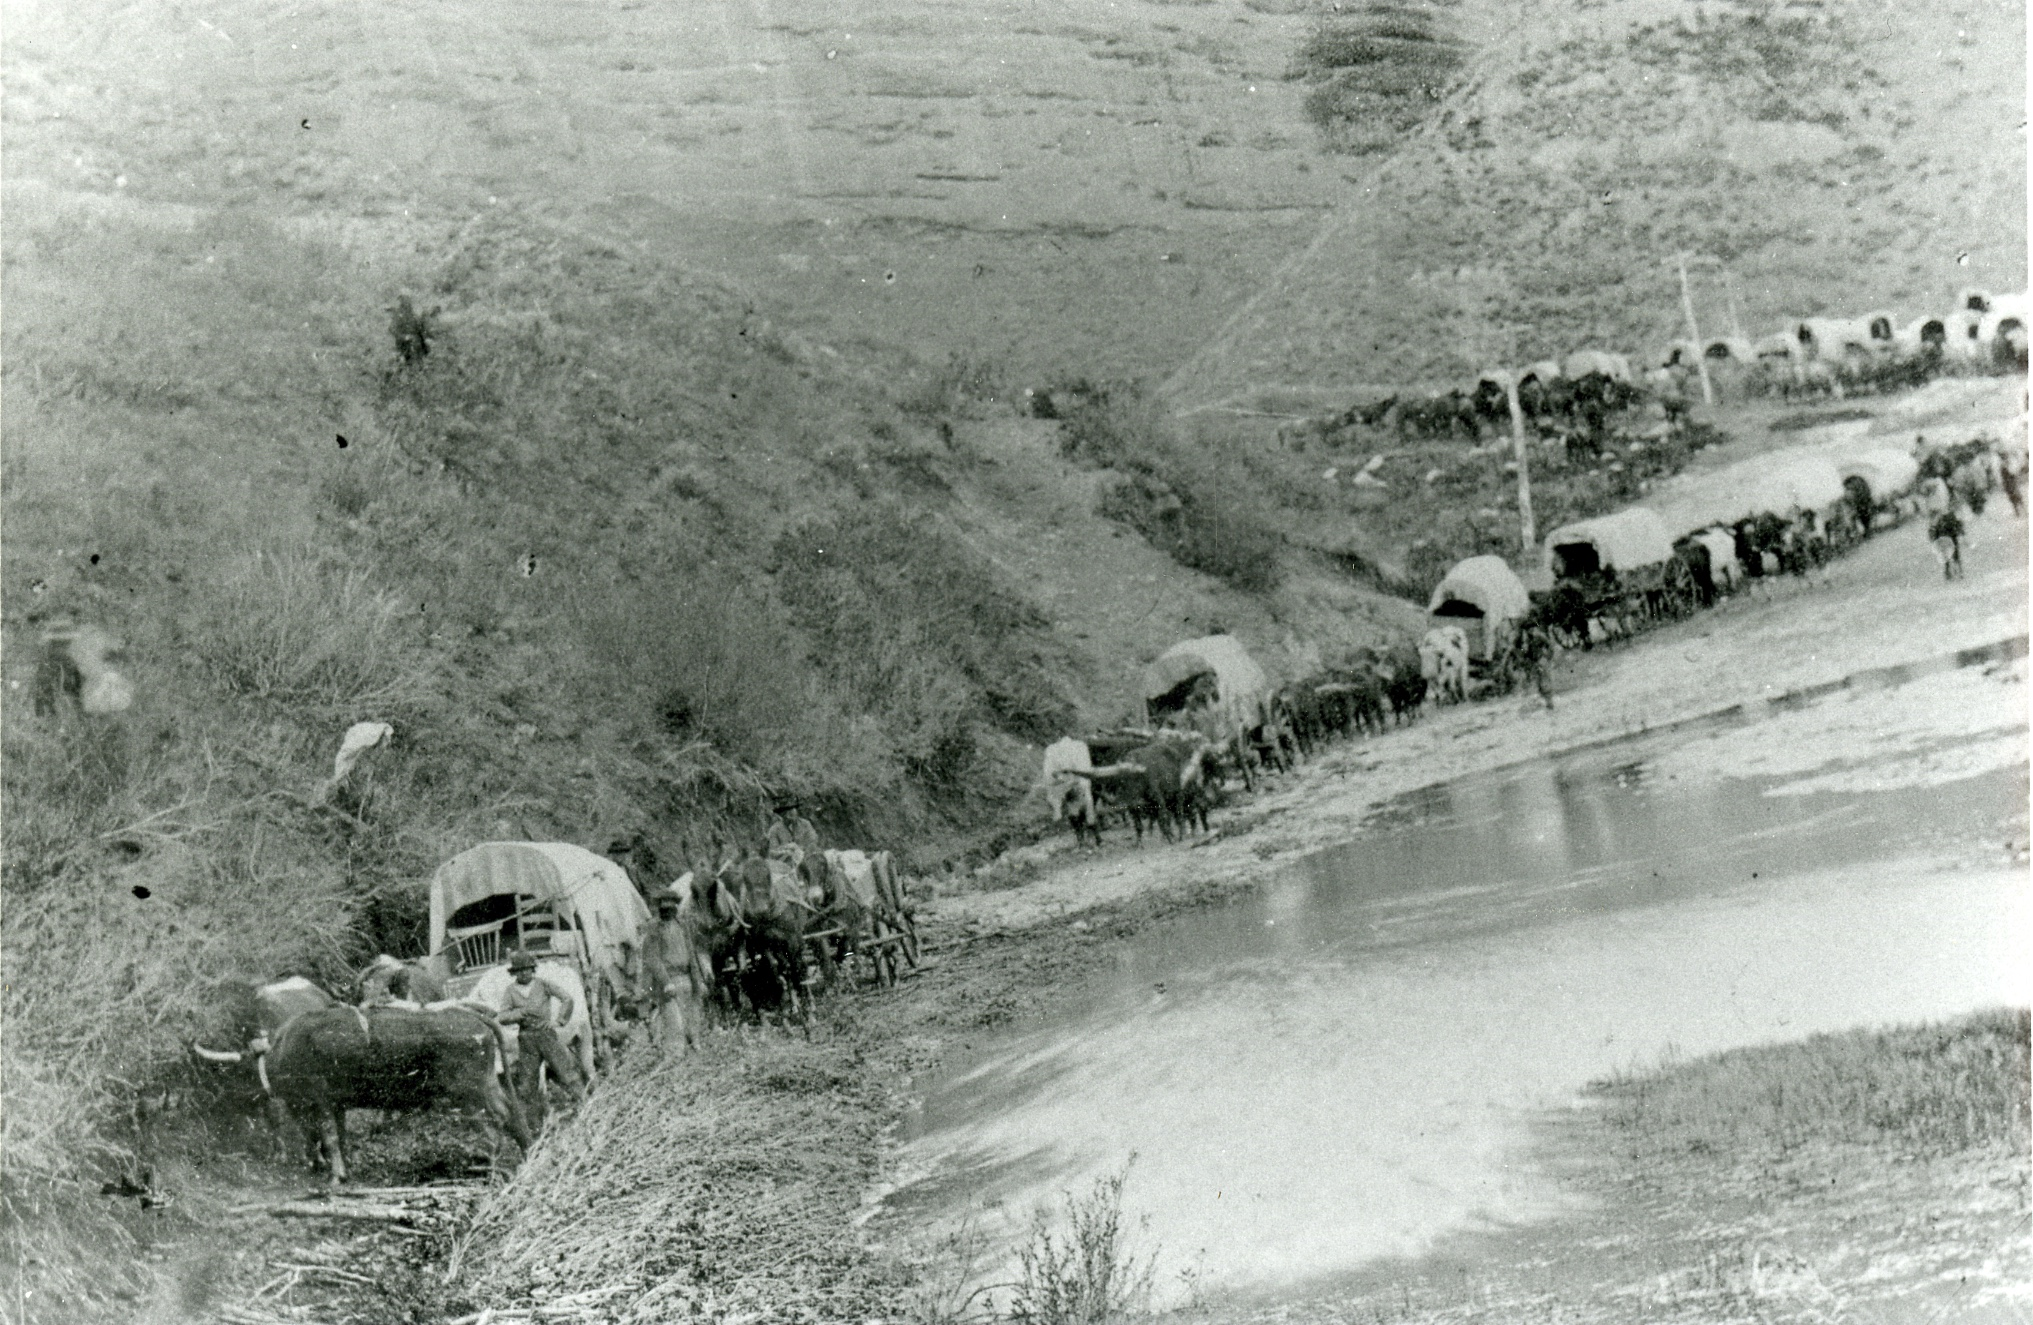 Pioneers trek across the wilderness with covered wagons and handcarts.